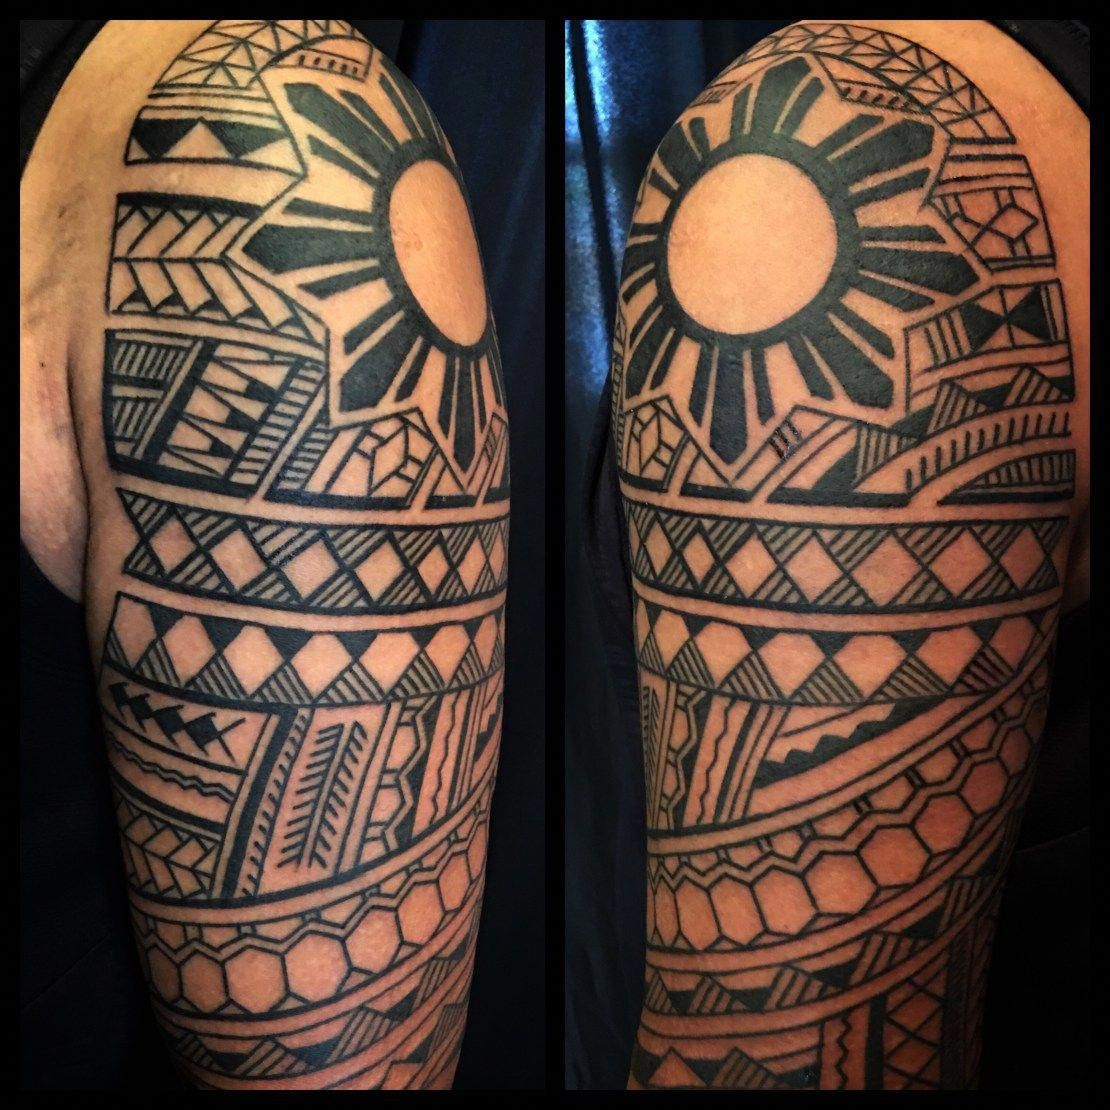 Filipino tattoo design and tattooing by samuel shaw on the